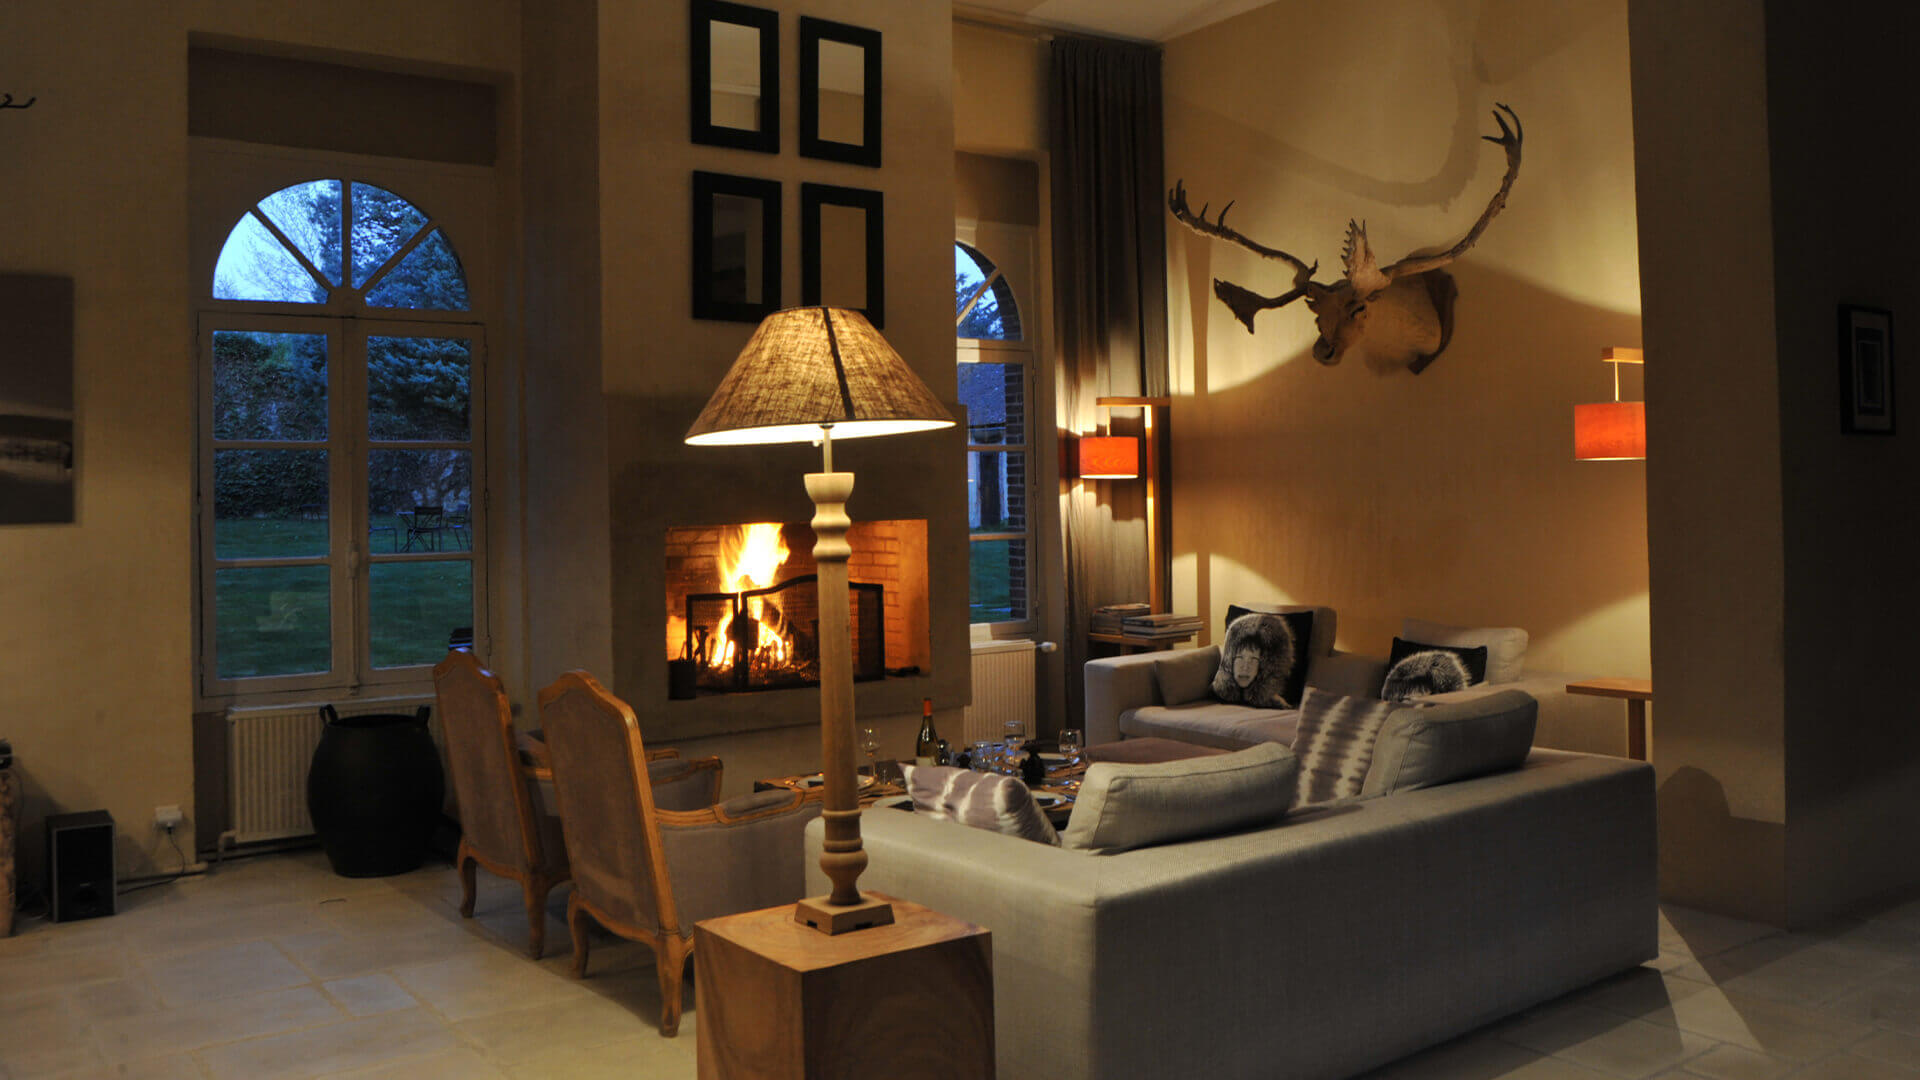 Chateau Perche living room area with rustic feel and fireplace